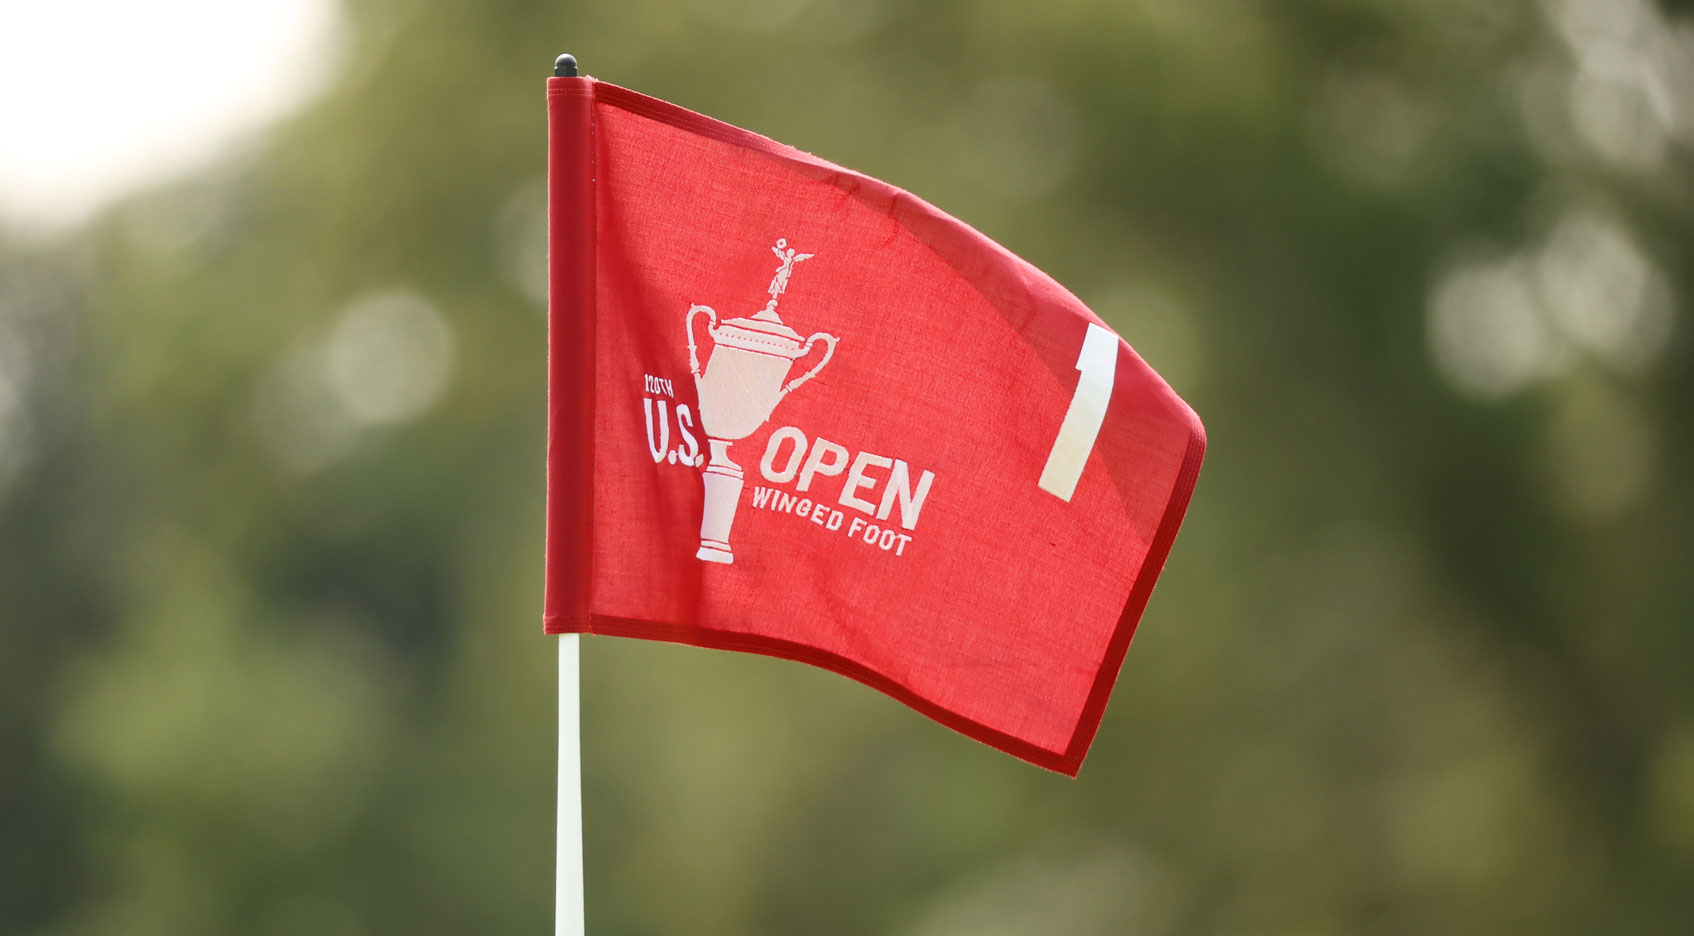 Roundtable: Previewing the U.S. Open